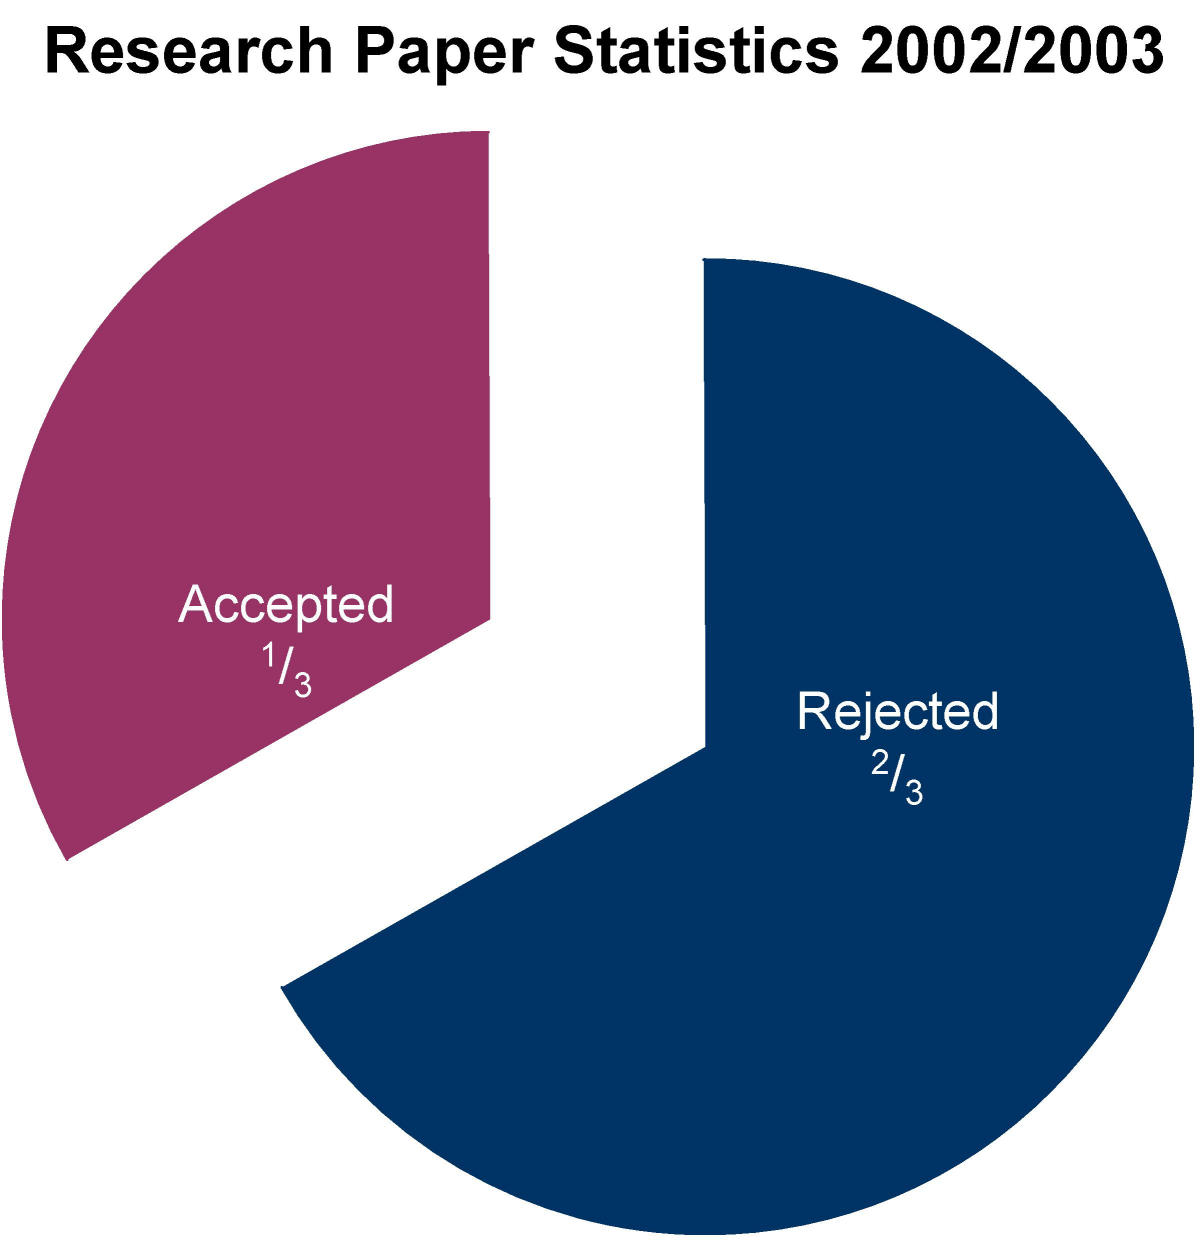 http://static-content.springer.com/image/art%3A10.1186%2F1476-4598-2-26/MediaObjects/12943_2003_Article_35_Fig1_HTML.jpg